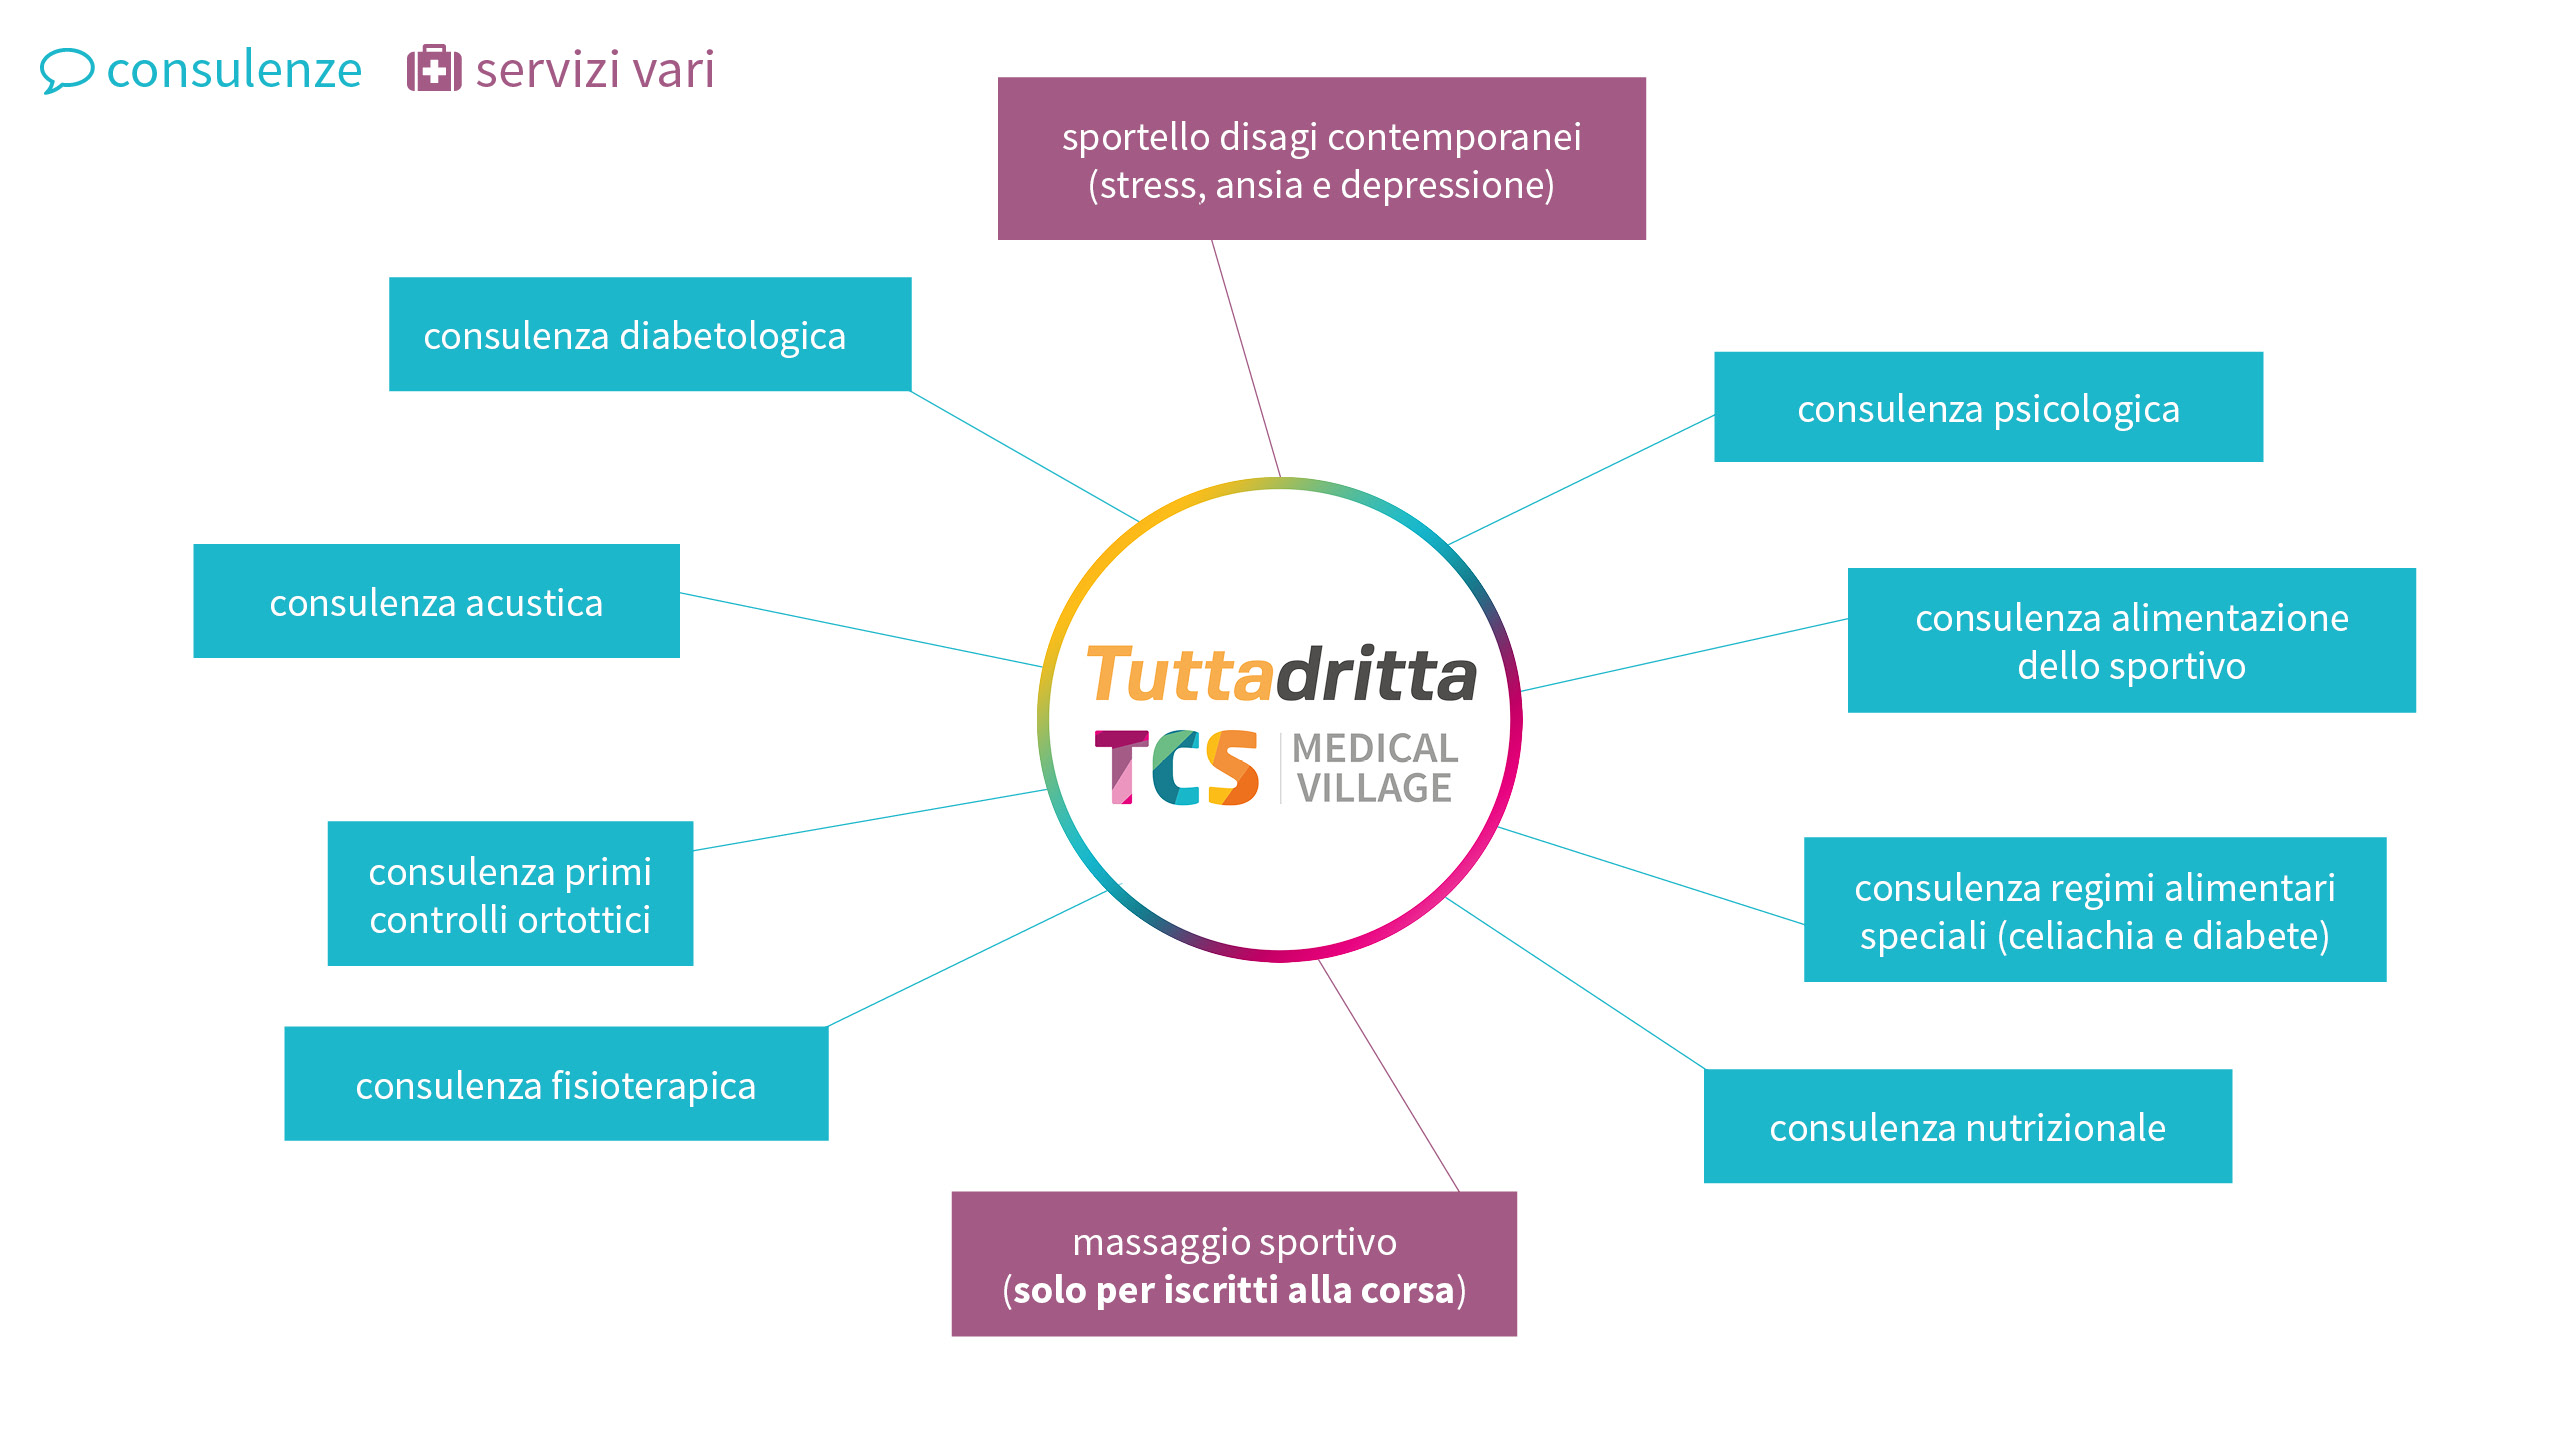 medical village di tuttadritta - infografica consulenze